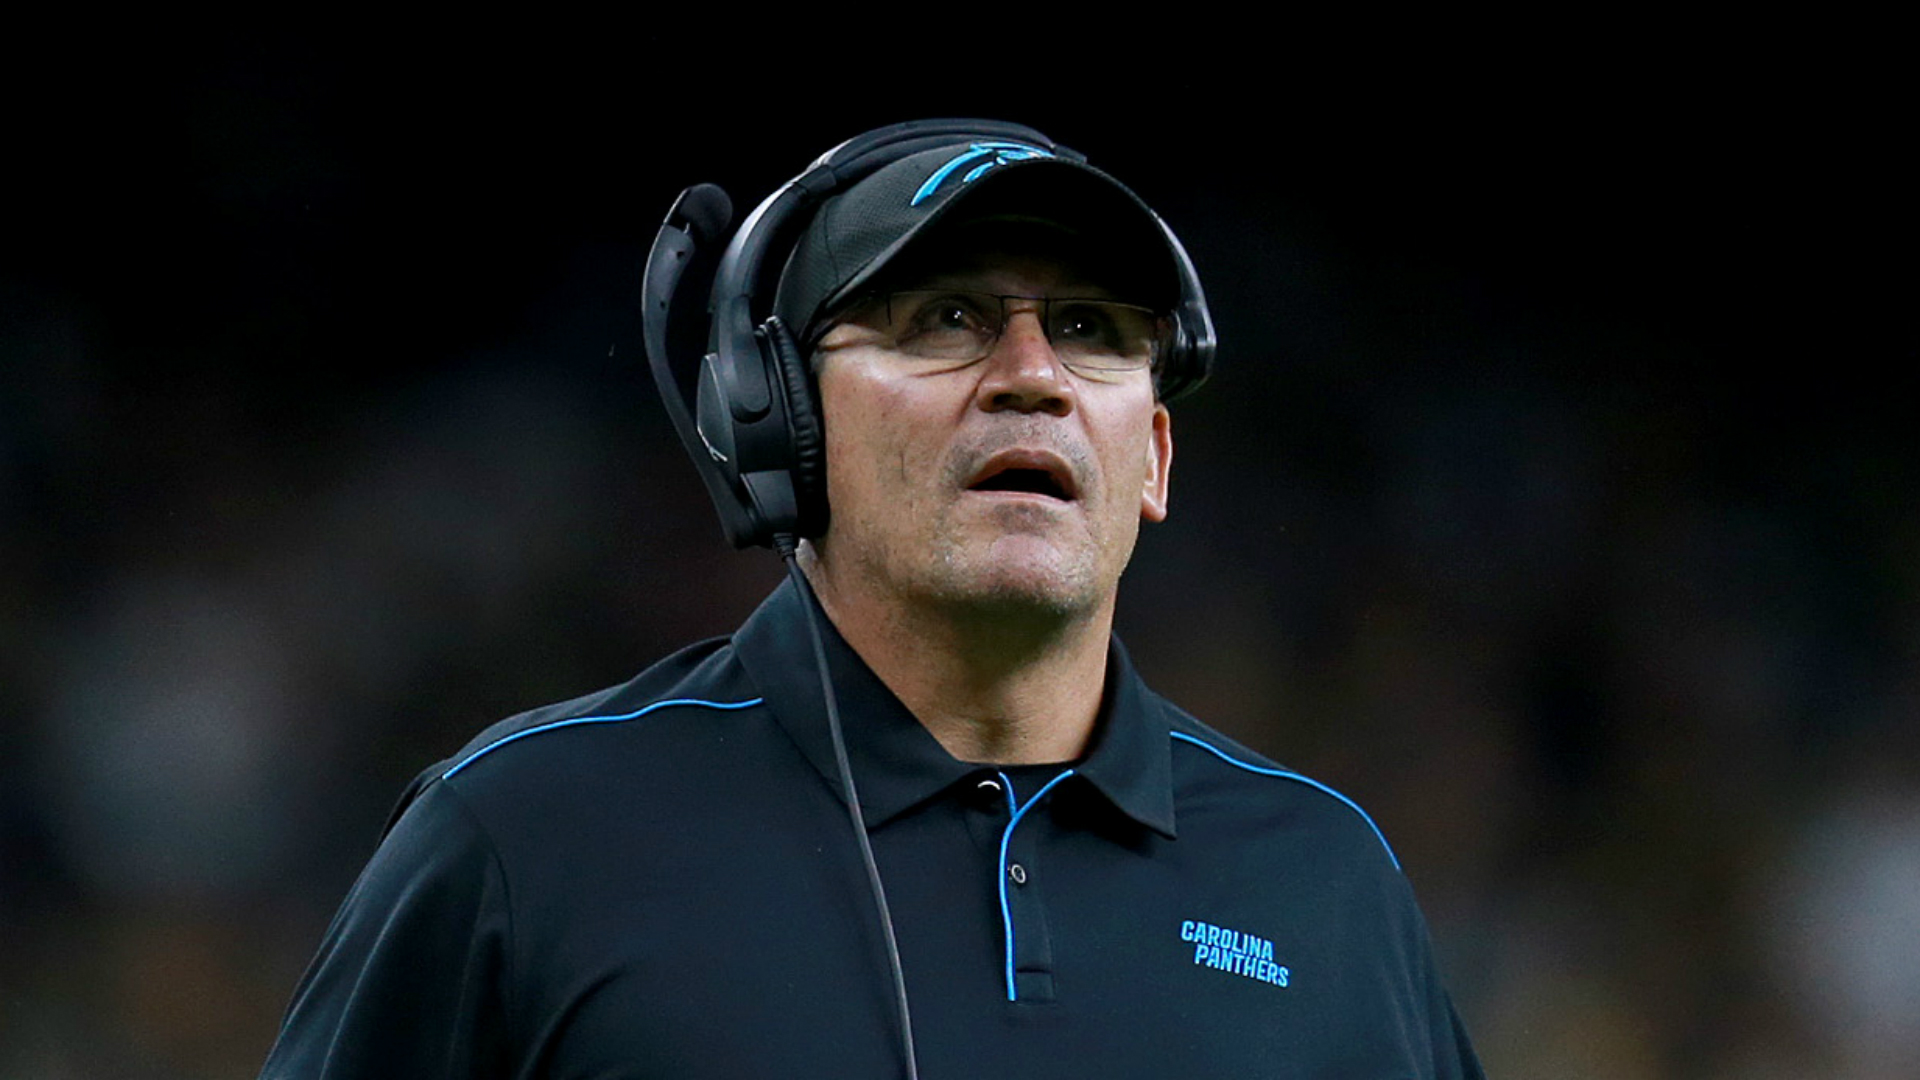 After nearly nine seasons at the helm, Ron Rivera's time as head coach of the Carolina Panthers has come to an end.